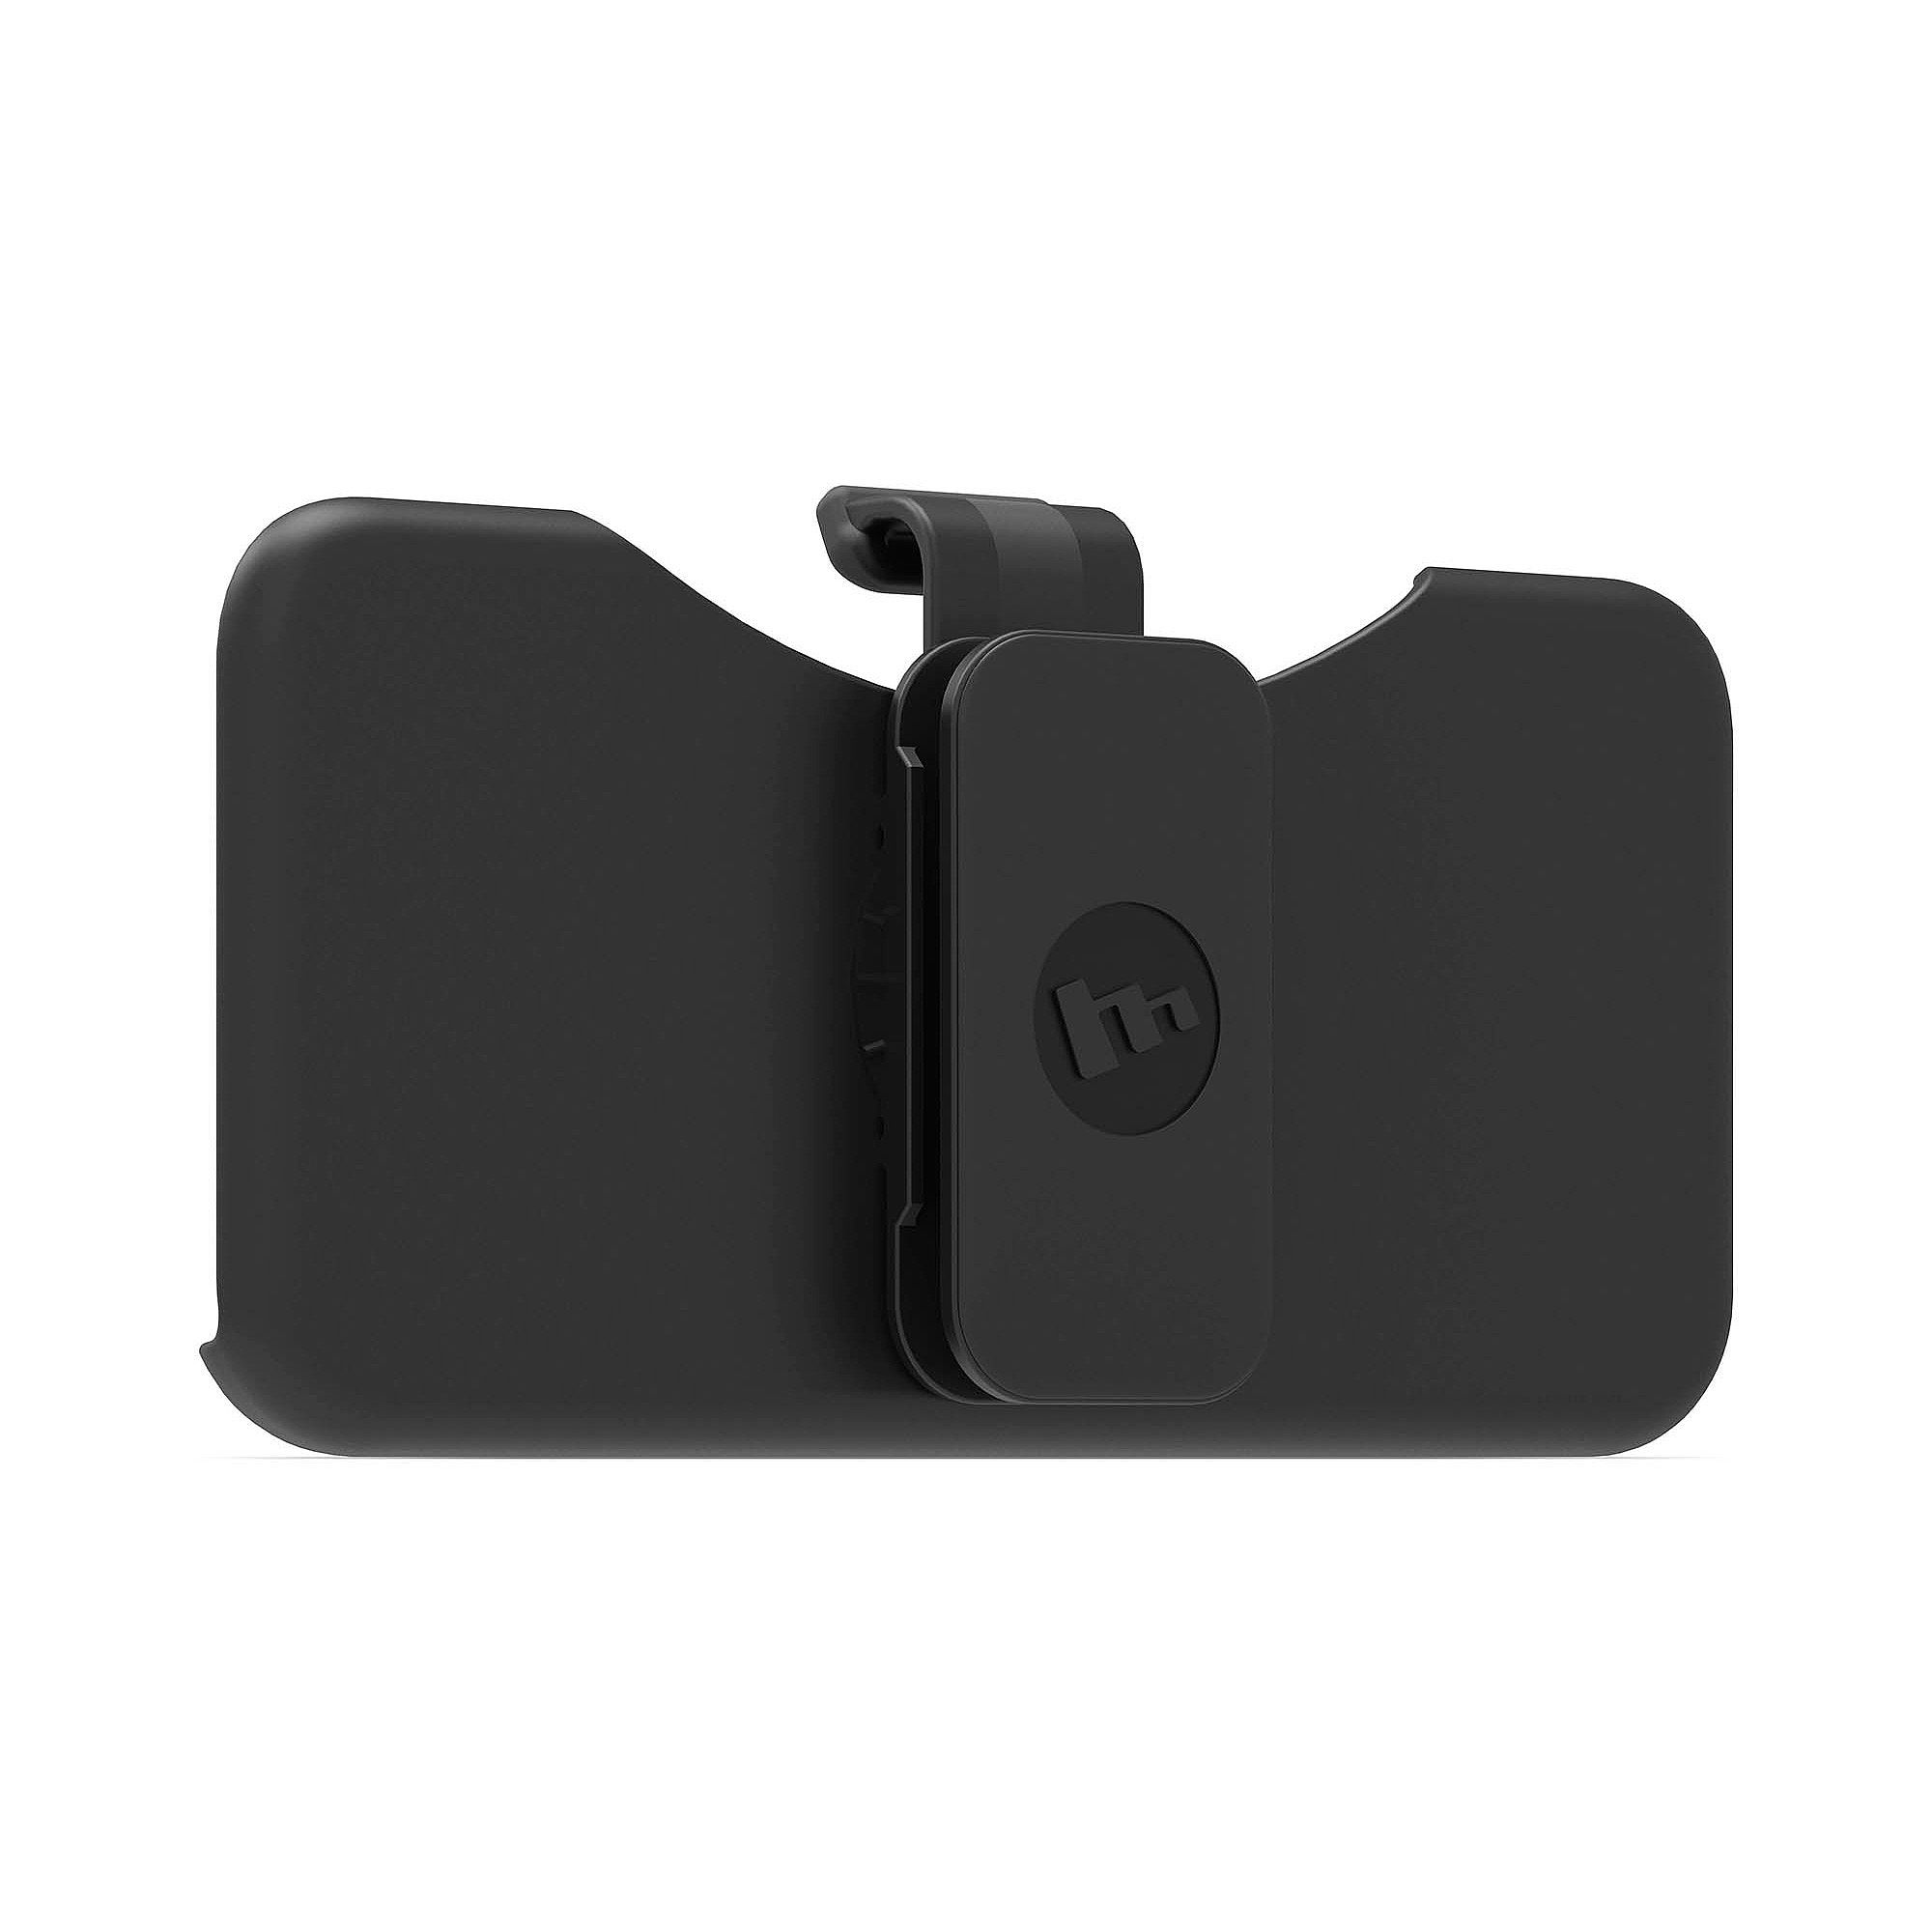 mophie Belt Clip for mophie Juice Pack for iPhone 6 Plus